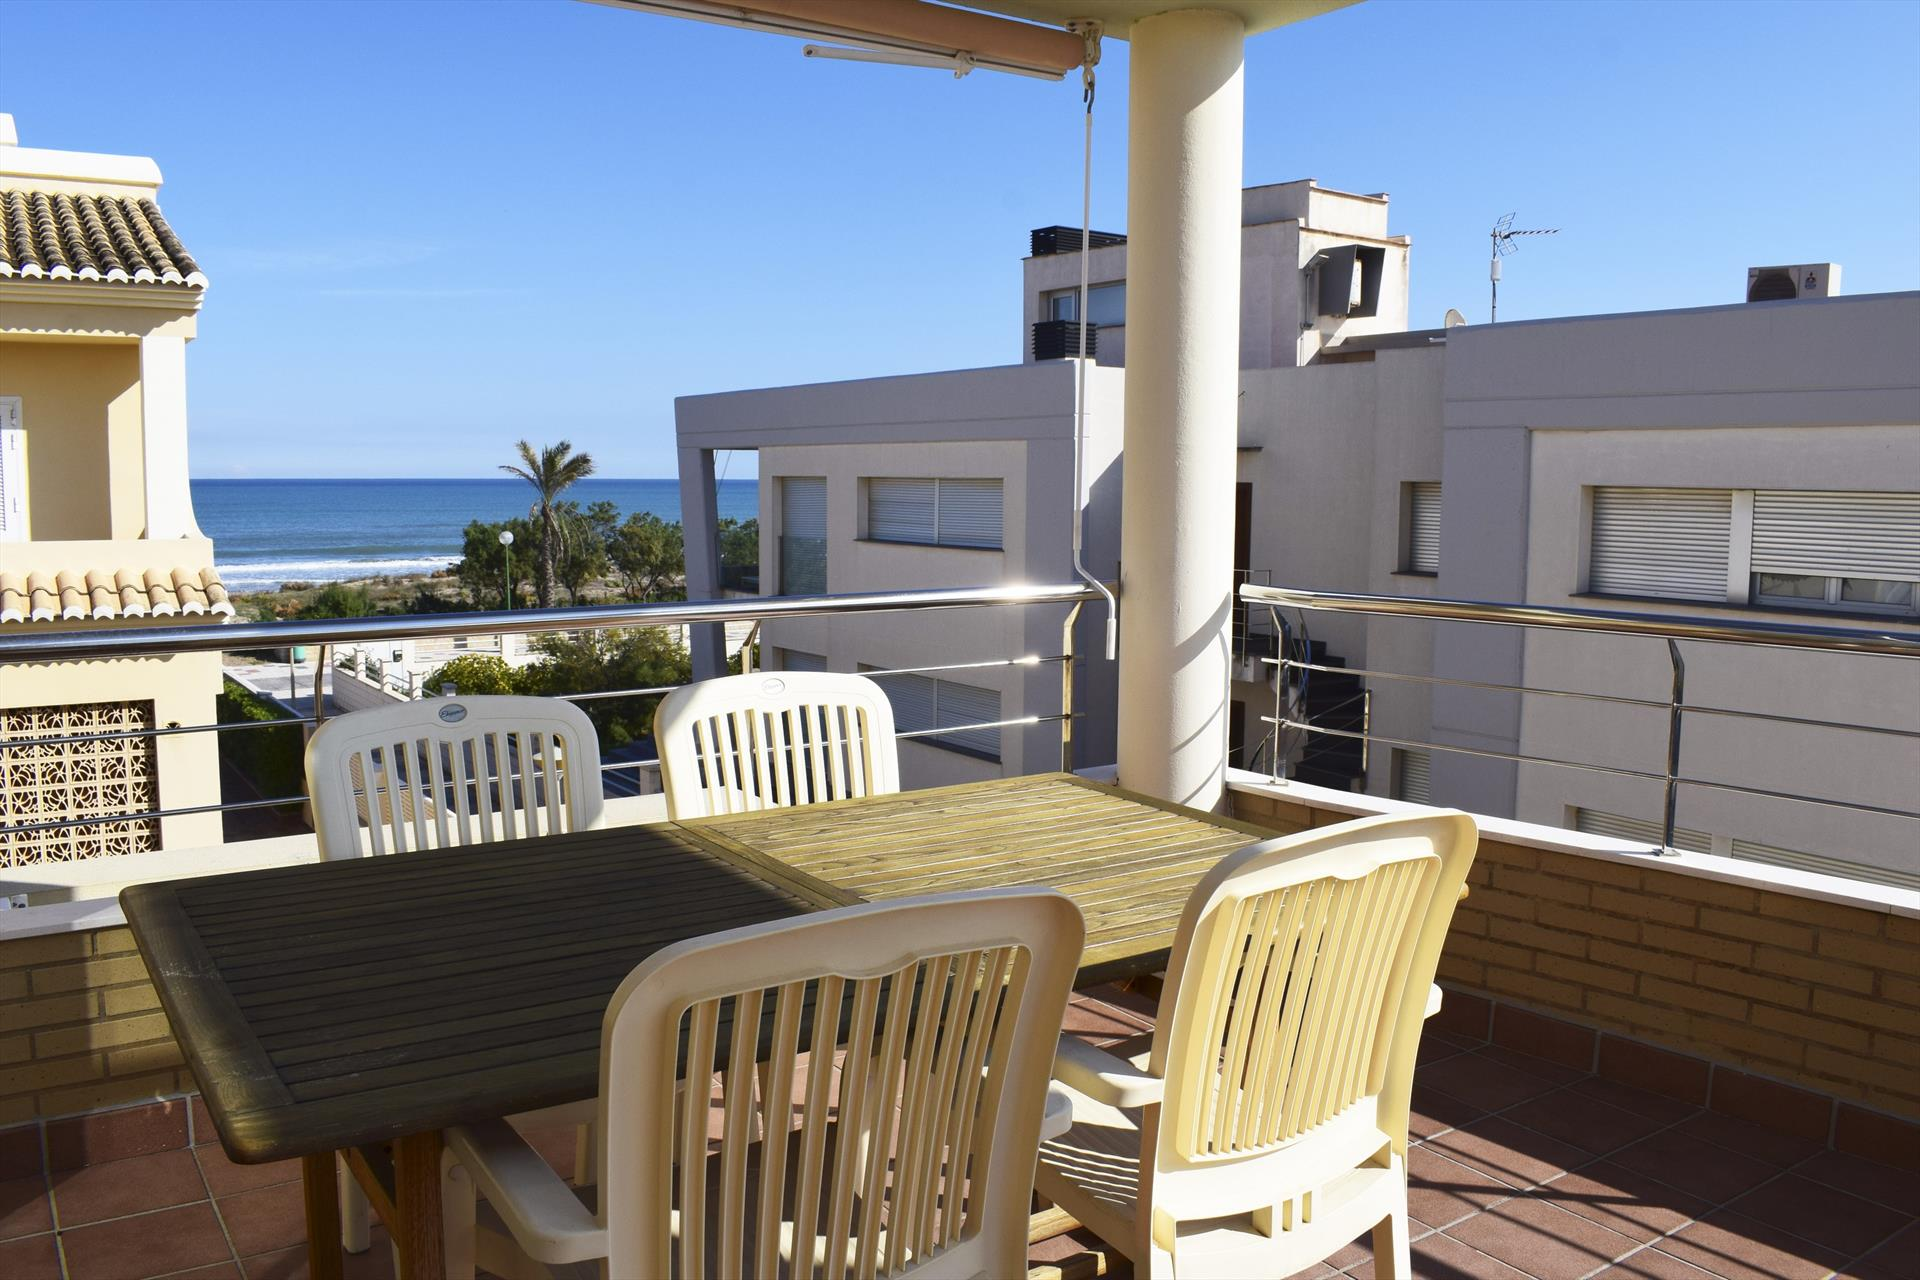 Les Barques Sector 5 Ático AT2227, Modern and comfortable holiday house in Oliva, on the Costa Blanca, Spain for 4 persons.....